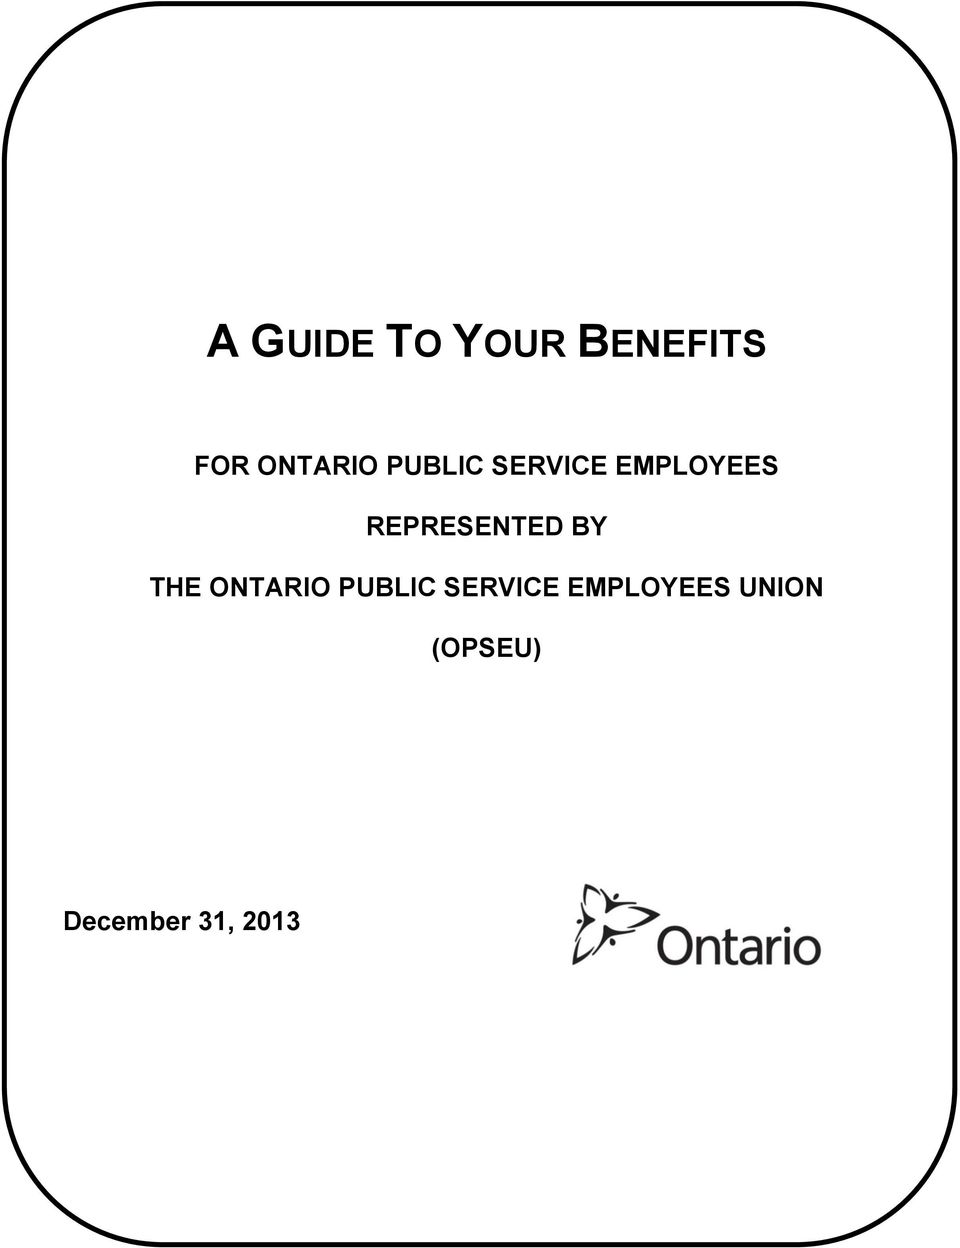 BY THE ONTARIO PUBLIC SERVICE